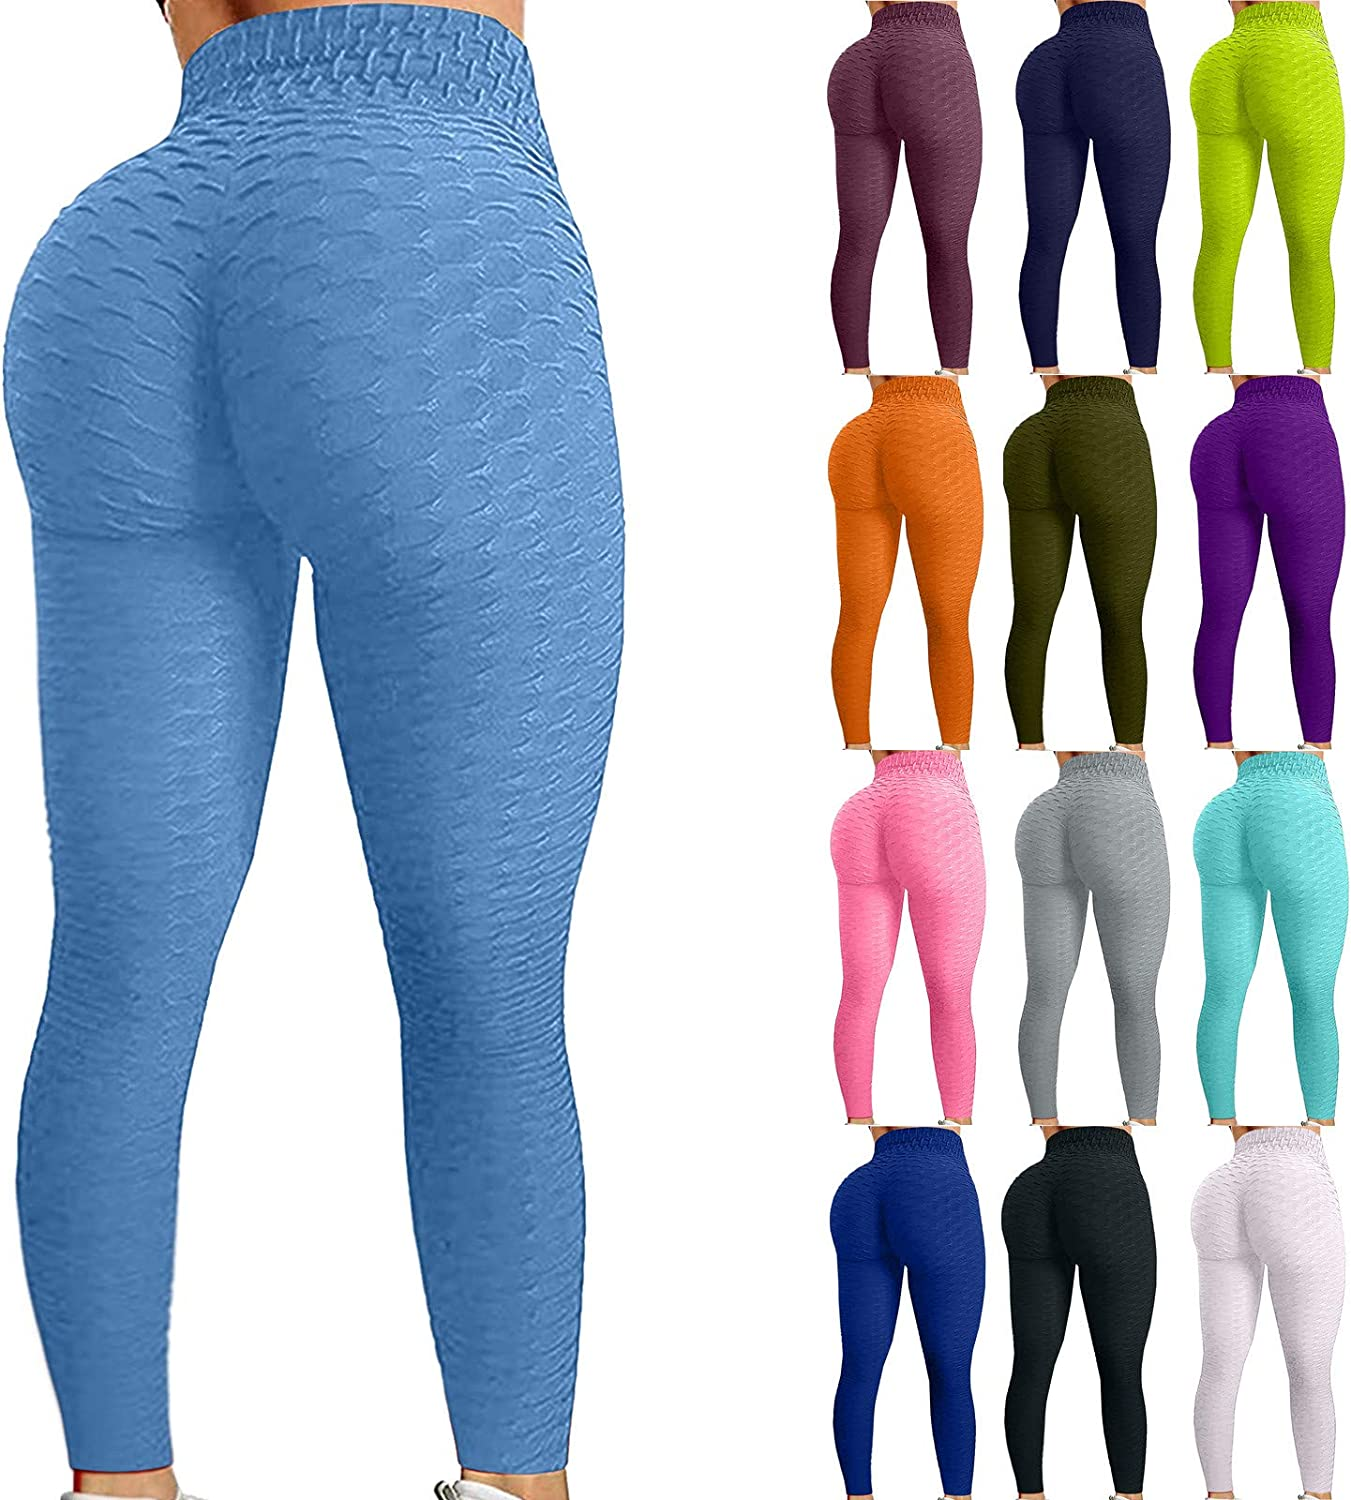 Amazon Com Firero Women S Bubble Hip Butt Lifting Anti Cellulite Legging High Waist Workout Tummy Control Yoga Tights Clothing